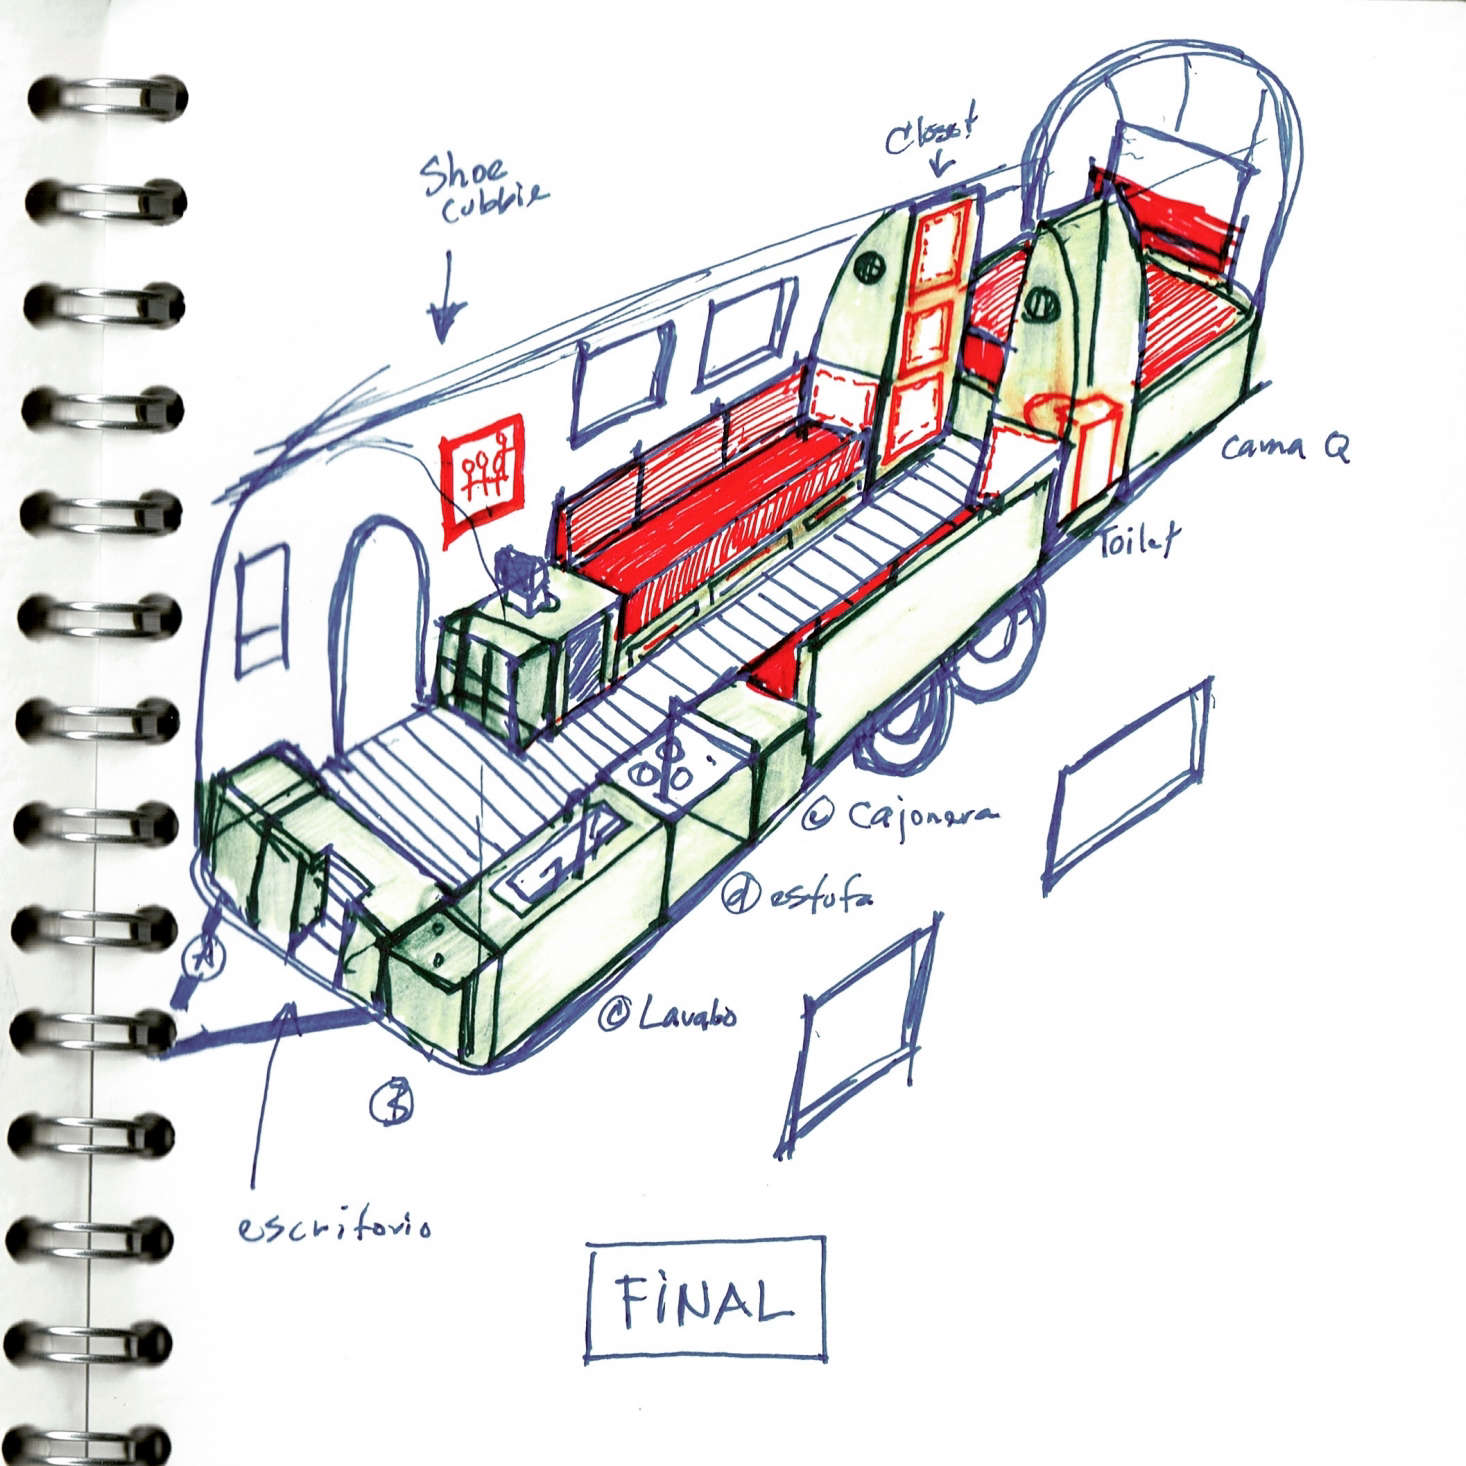 Another plan in progress: Though labeled final, things ultimately shifted around quite a bit—and the kitchen sink and shoe cubby were both deemed unnecessary.